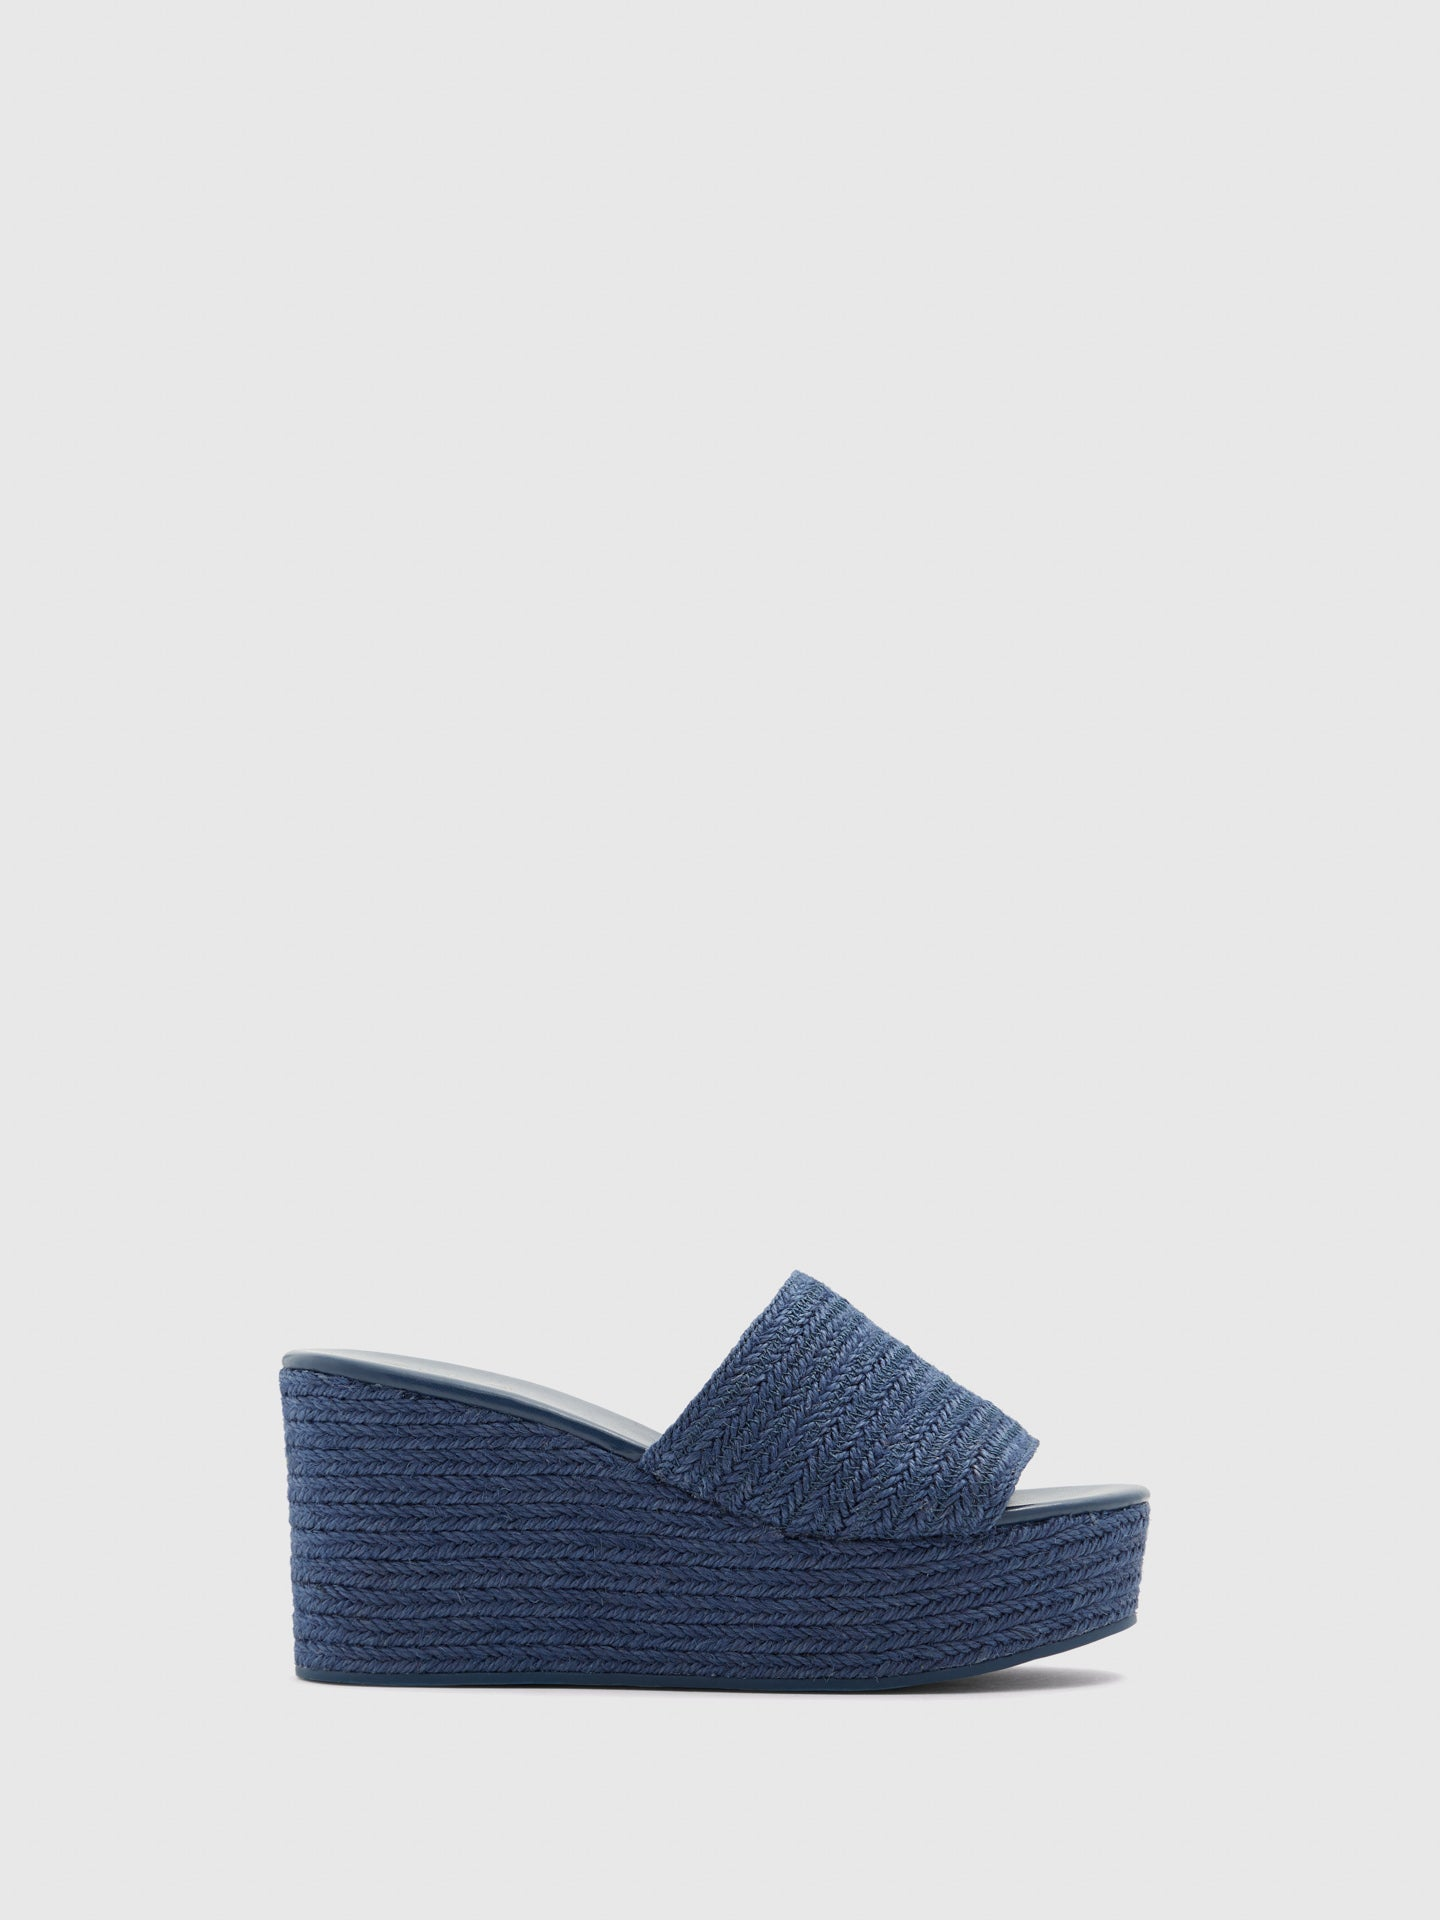 Aldo Blue Wedge Mules